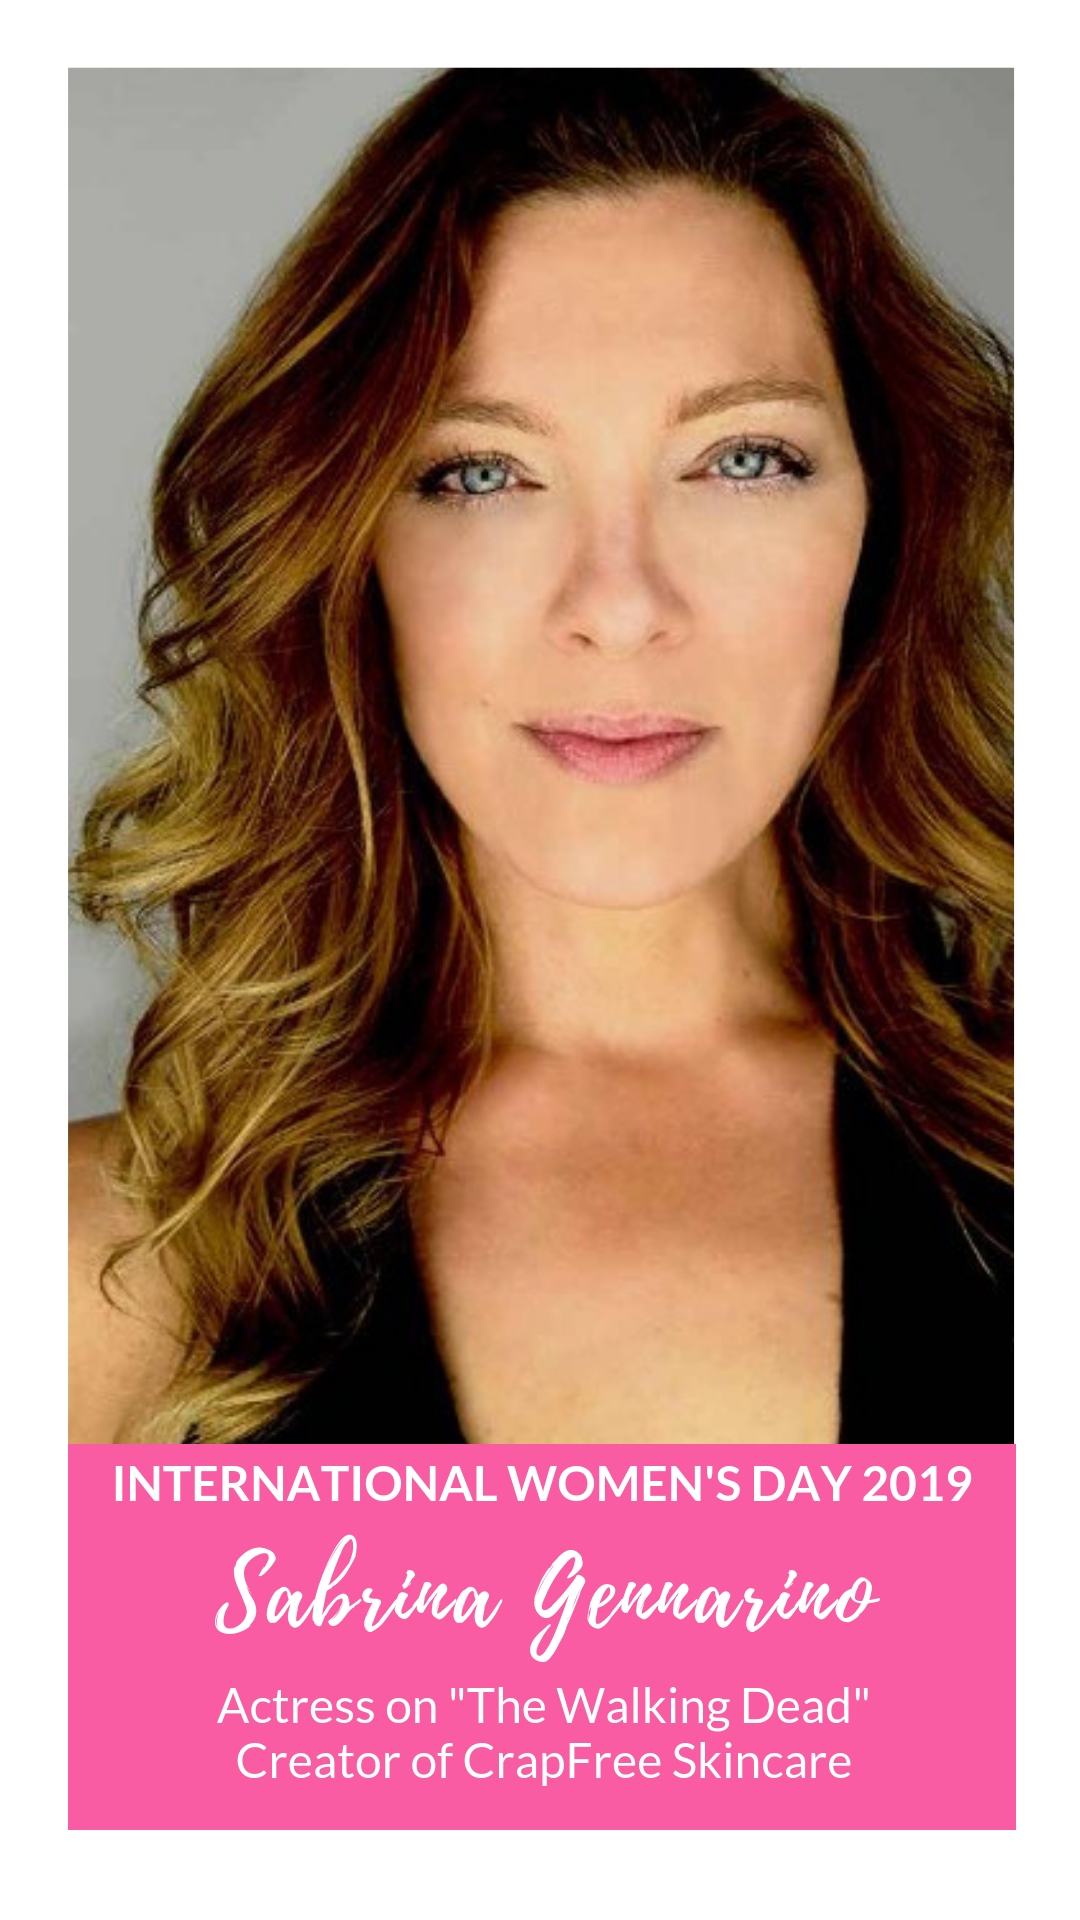 International Women's Day - Sabrina Gennarino